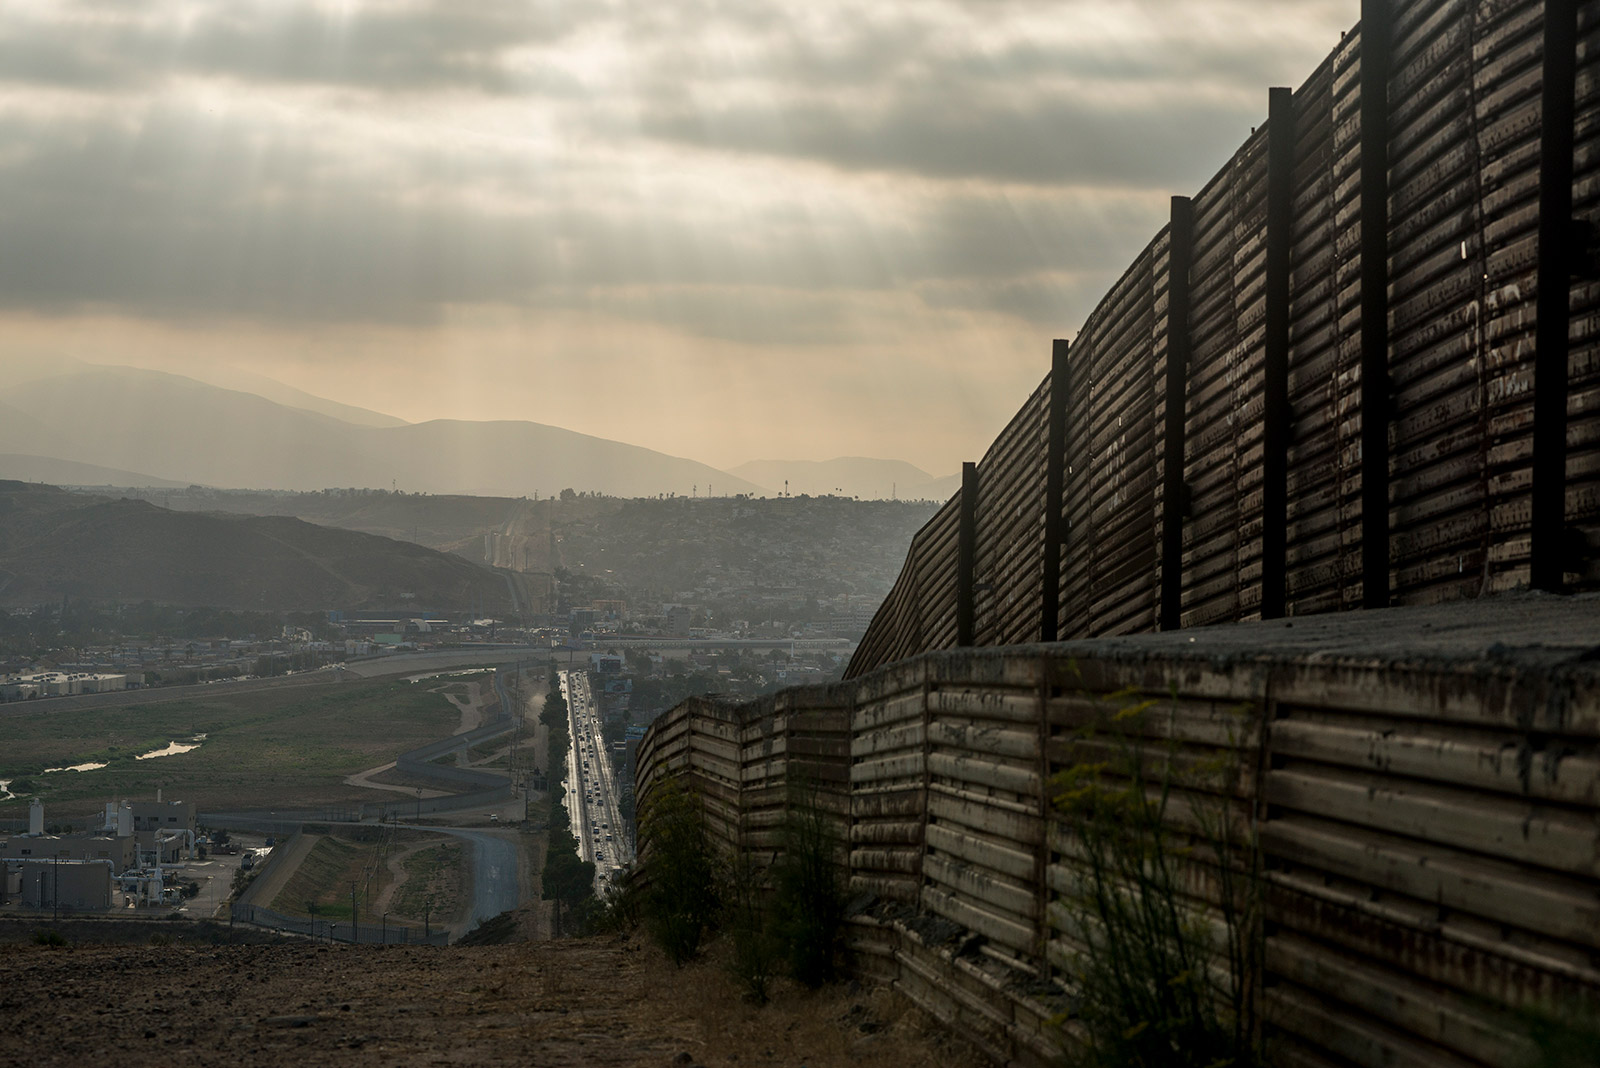 The majority of the primary fencing along the U.S.-Mexico border in San Diego is made of corrugated steel that once served as helicopter landing pads during the Vietnam War. This section, shown on Aug. 16, 2017, lines a hill leading west toward the San Ysidro Port of Entry. <em>(Brandon Quester/inewsource)</em>